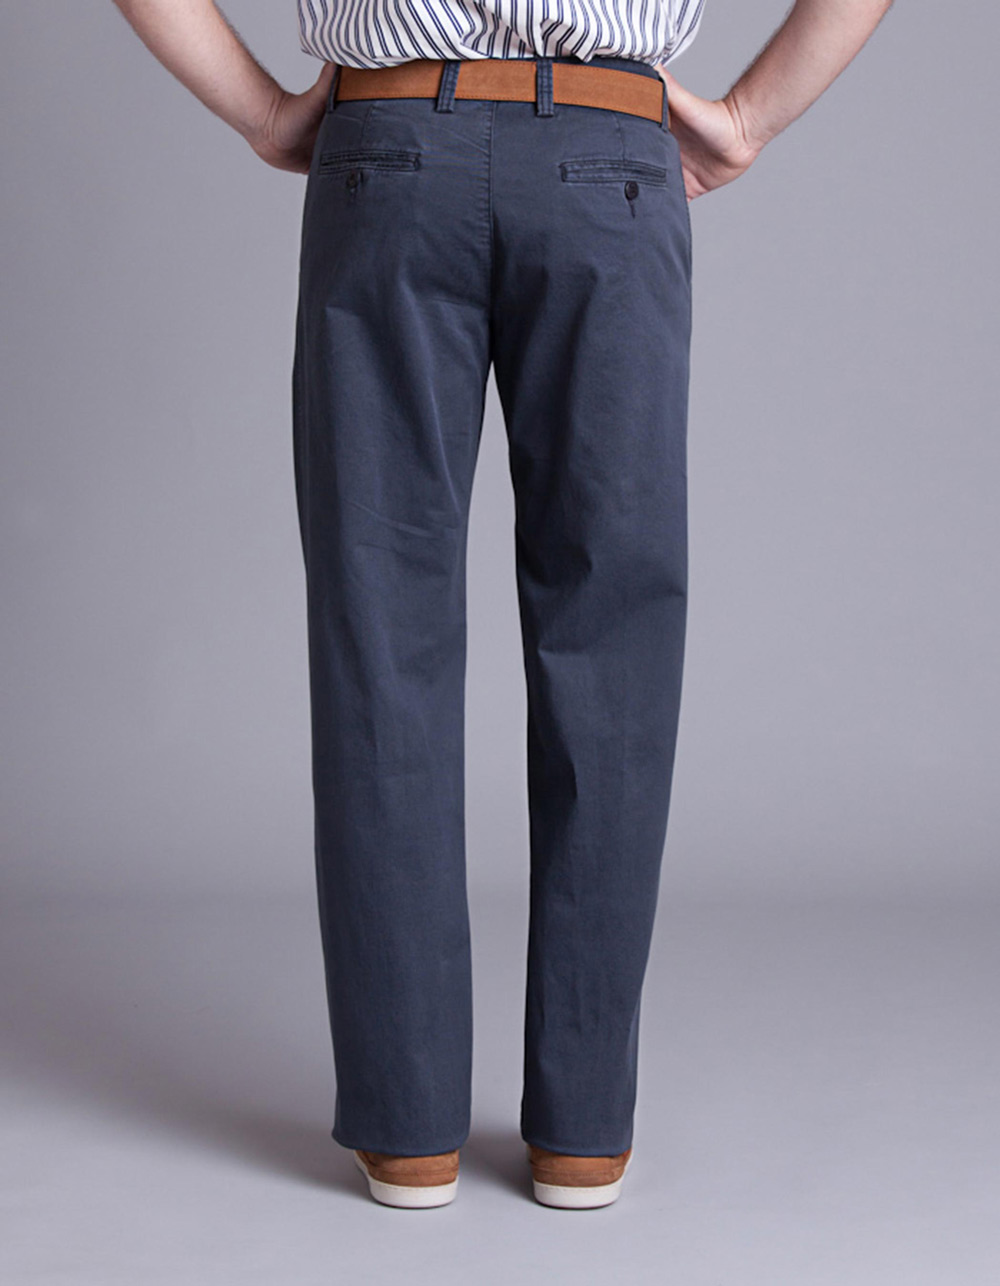 Navy chinos trousers - Backside